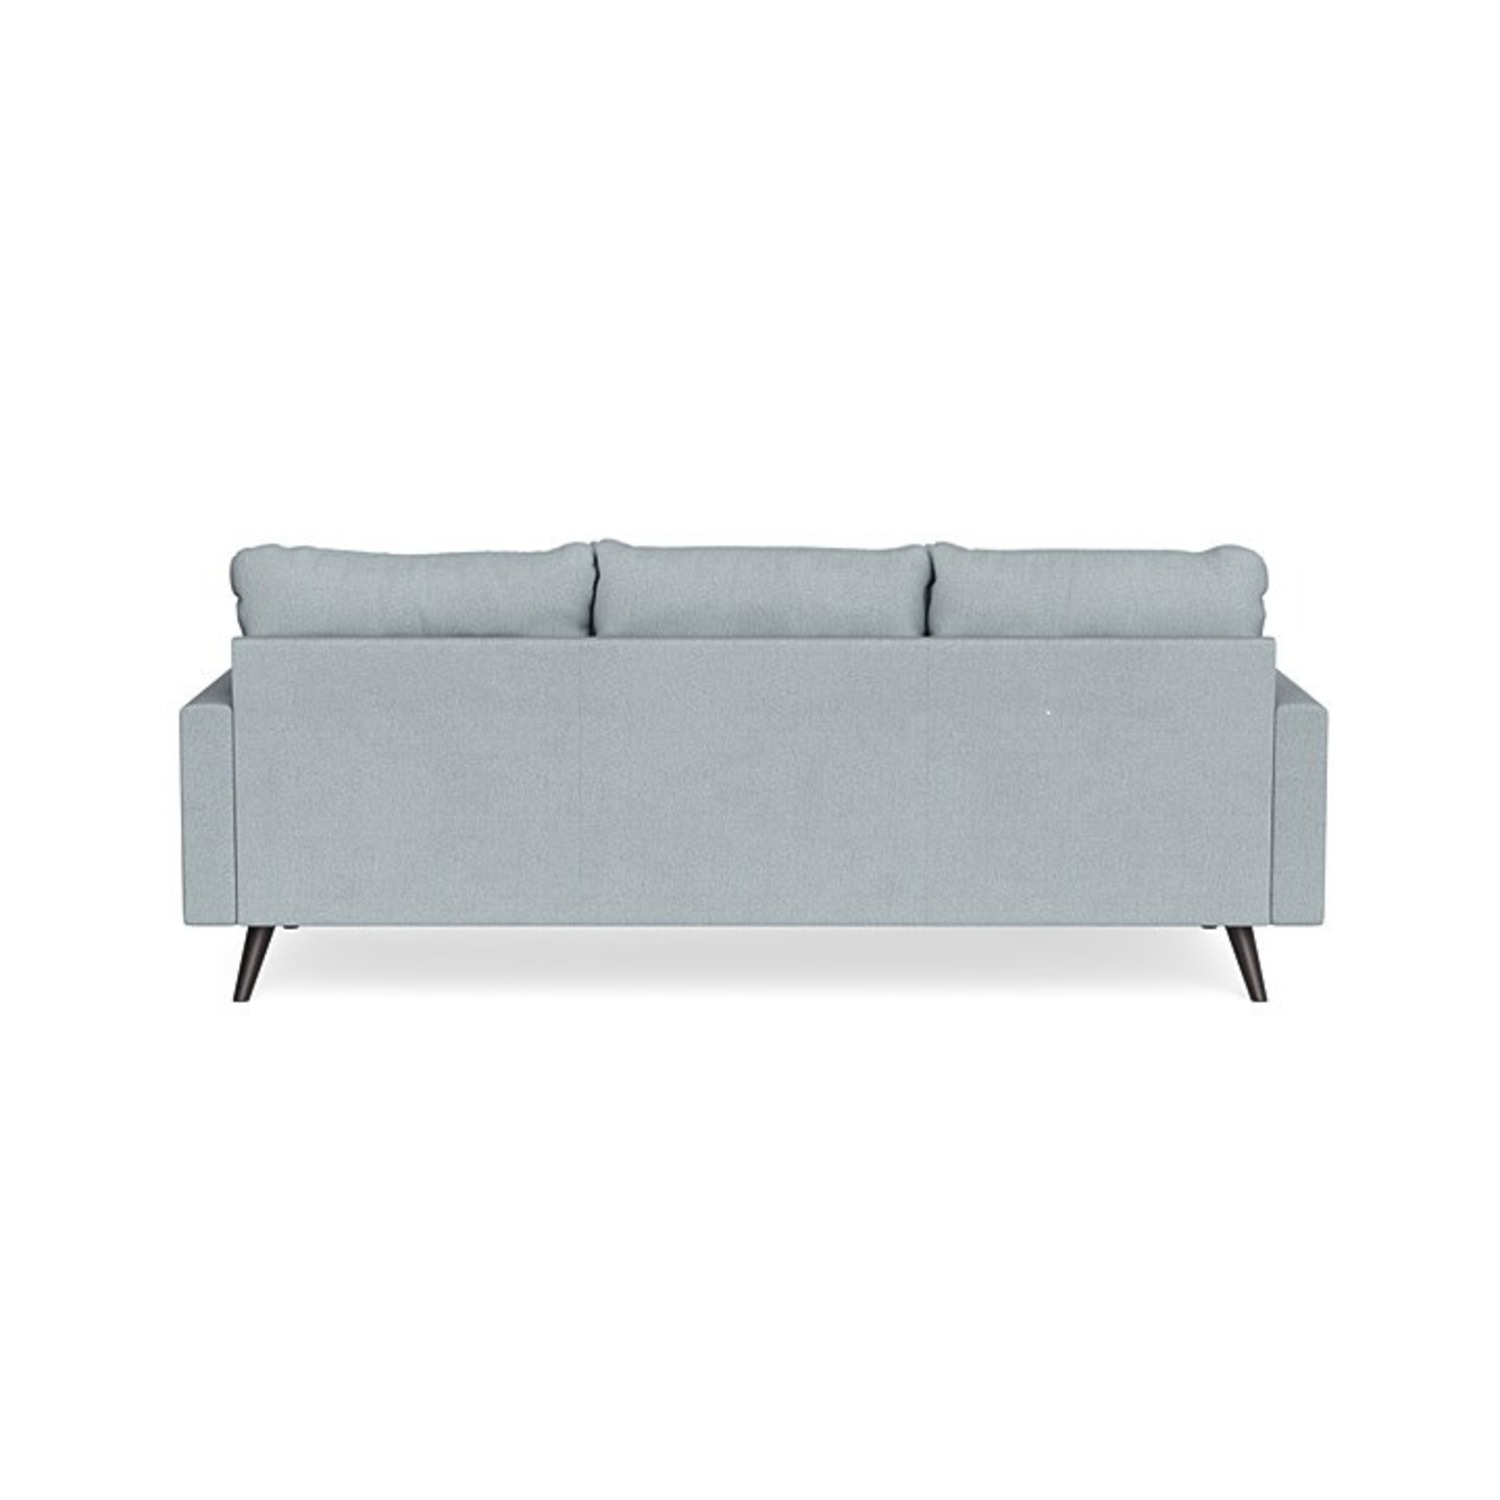 Inside Weather Custom Milo Sectional in Ash - image-4